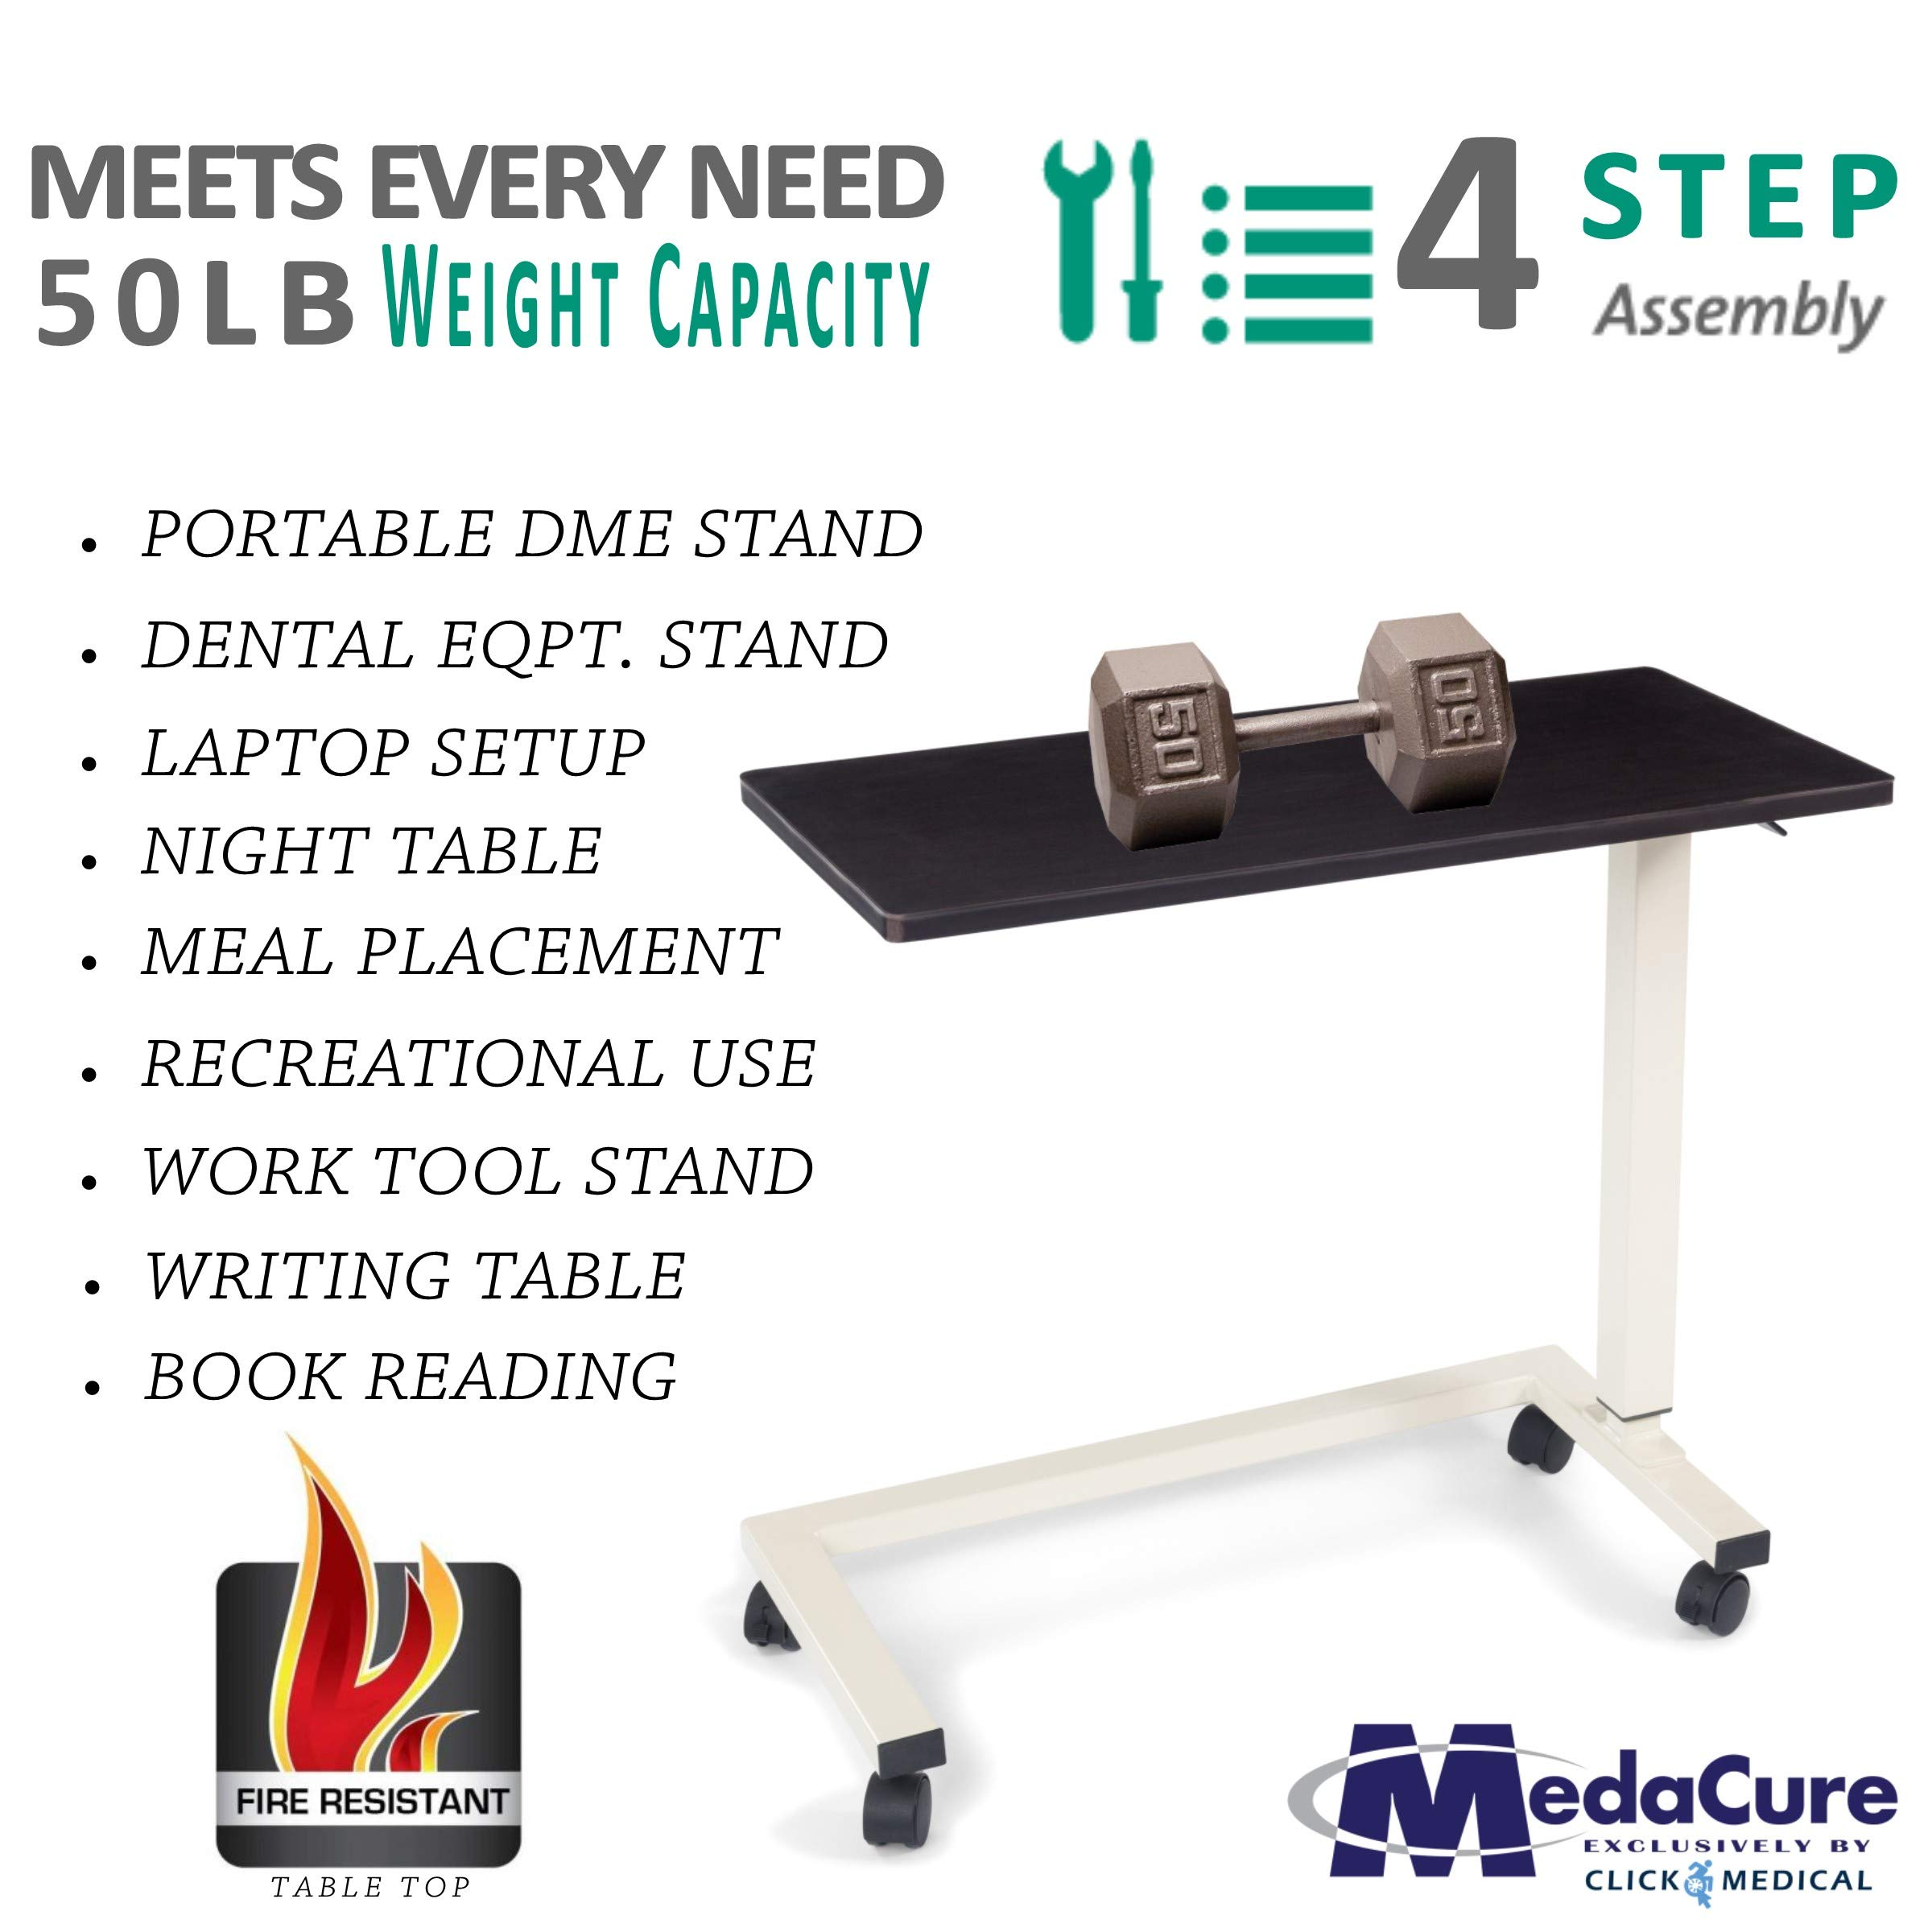 Medical Height Adjustable Overbed Table - Flame Resistant and Anti-Spill Rim - Heavy Duty Steel Frame and Swivel Locking Casters for Home, Hospital,Laptop, and Breakfast– 50lb Weight Capacity. (Oak) by Medacure (Image #2)